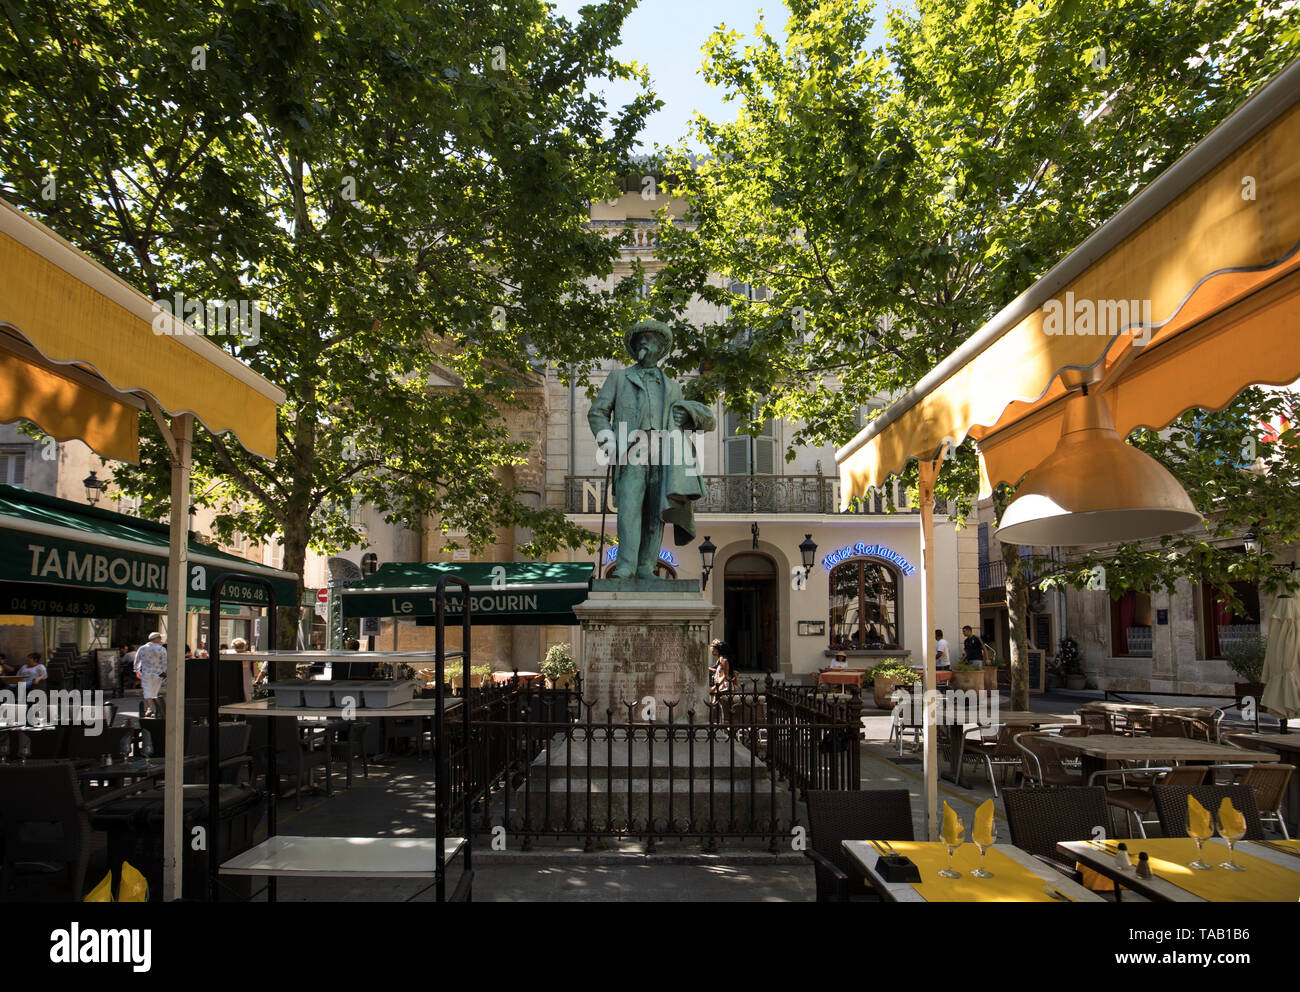 Arles, France - June 24, 2017: Statue of Frederic Mistral on Forum Square, Arles, Bouches-du-Rhone, France - Stock Image